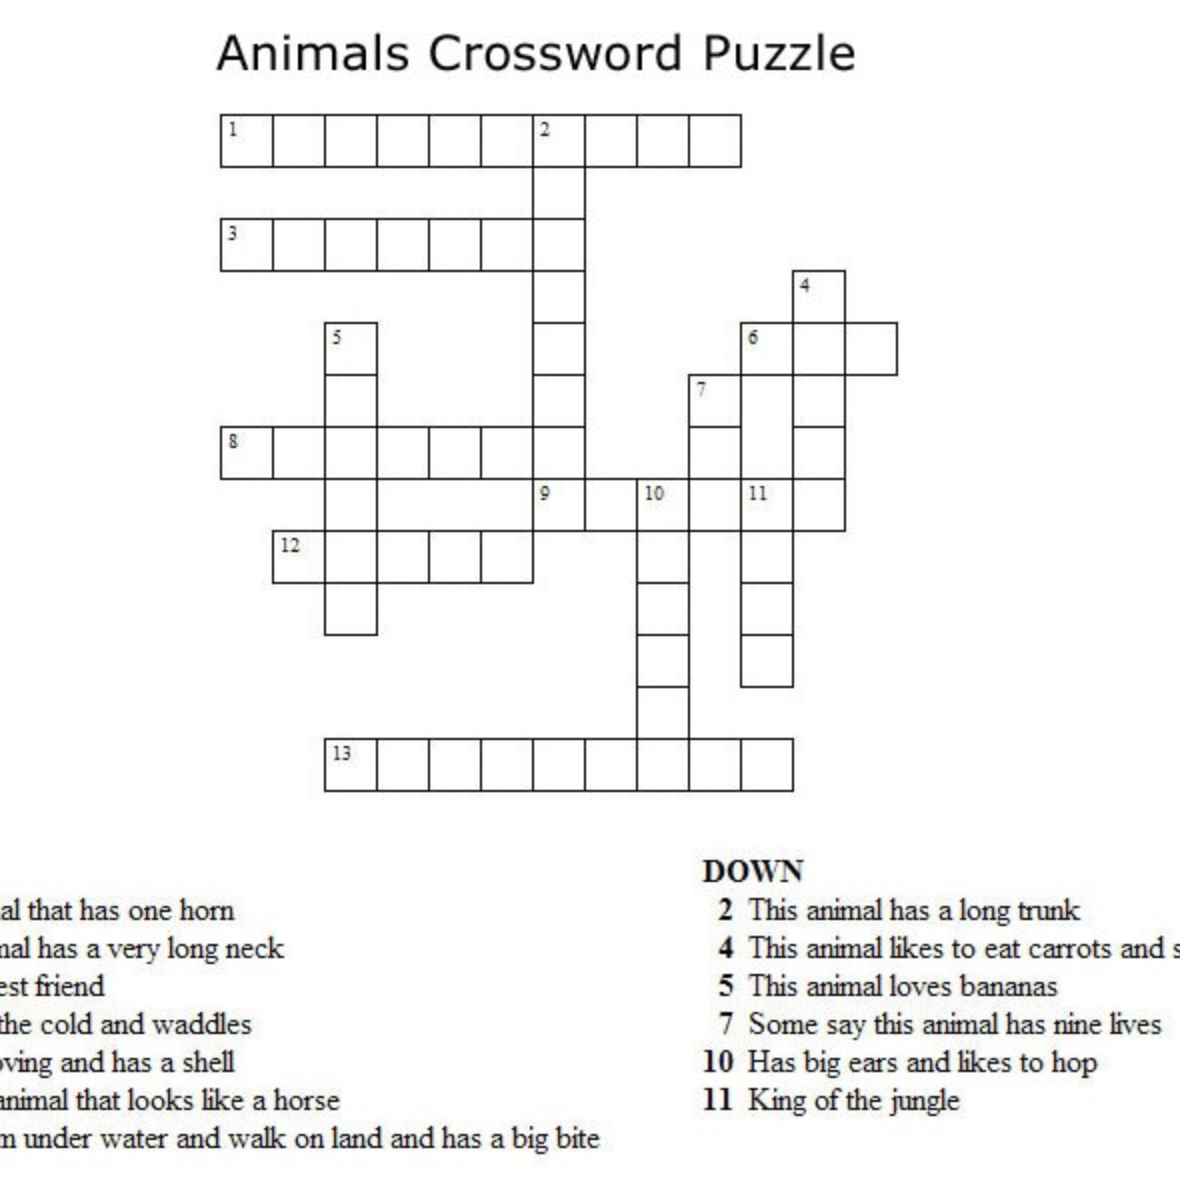 Animals Crossword Puzzle Kids Crossword Puzzles Crossword